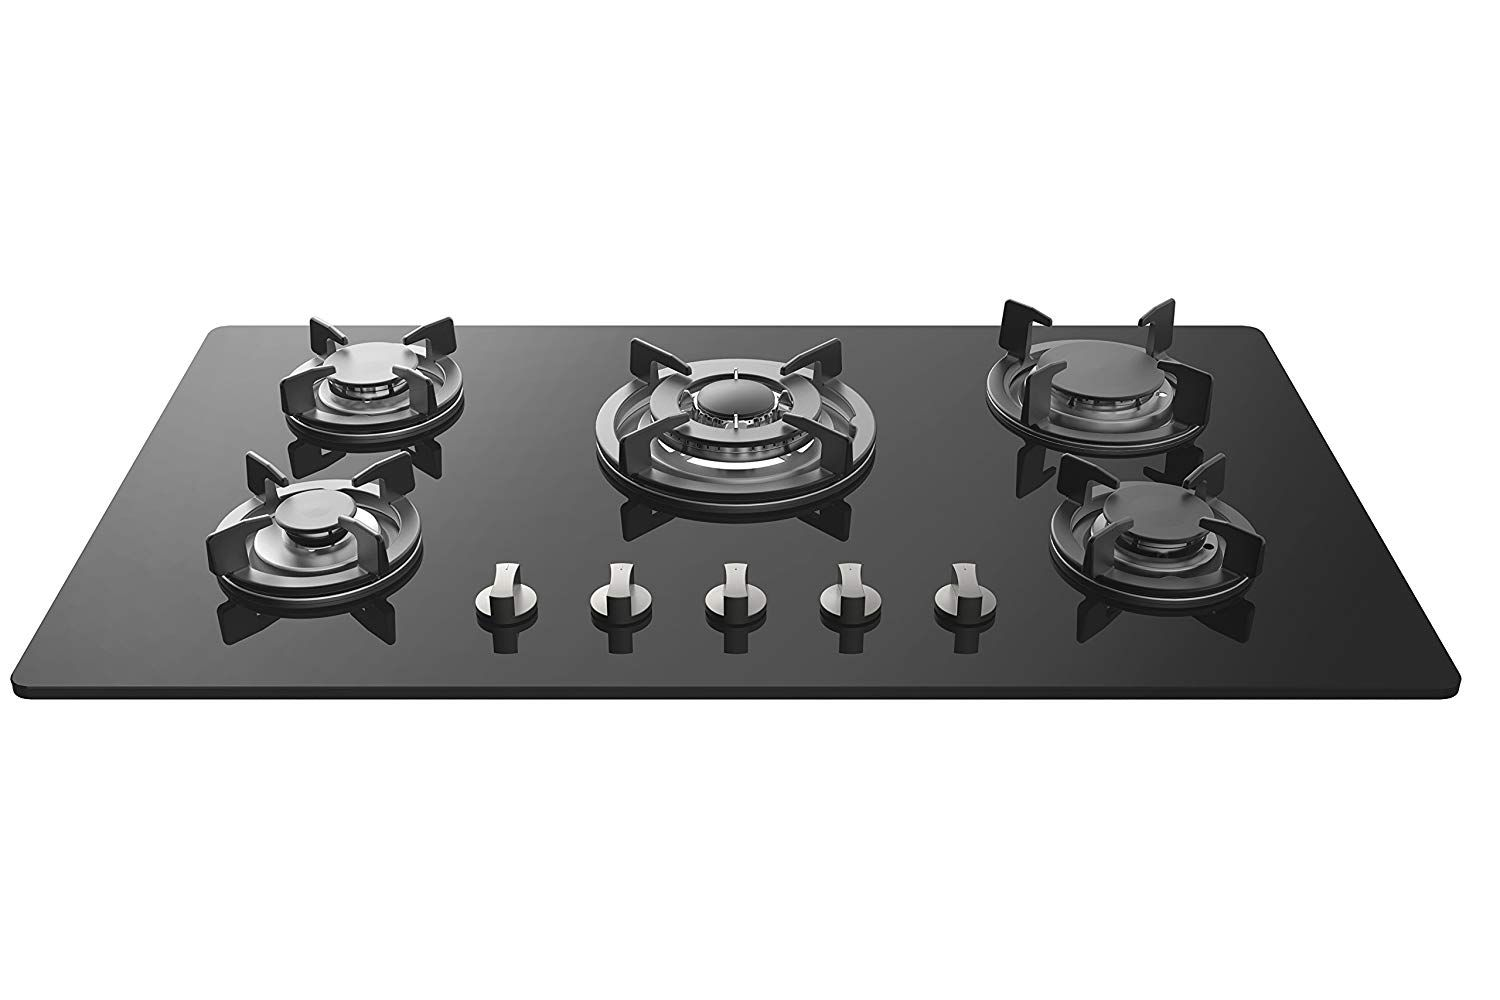 Black Empava 34XGC5L90A 34 Inch Tempered Glass Gas Professional 5 Italy Sabaf Burners Stove Top Certified with Thermocouple Protection Cooktops